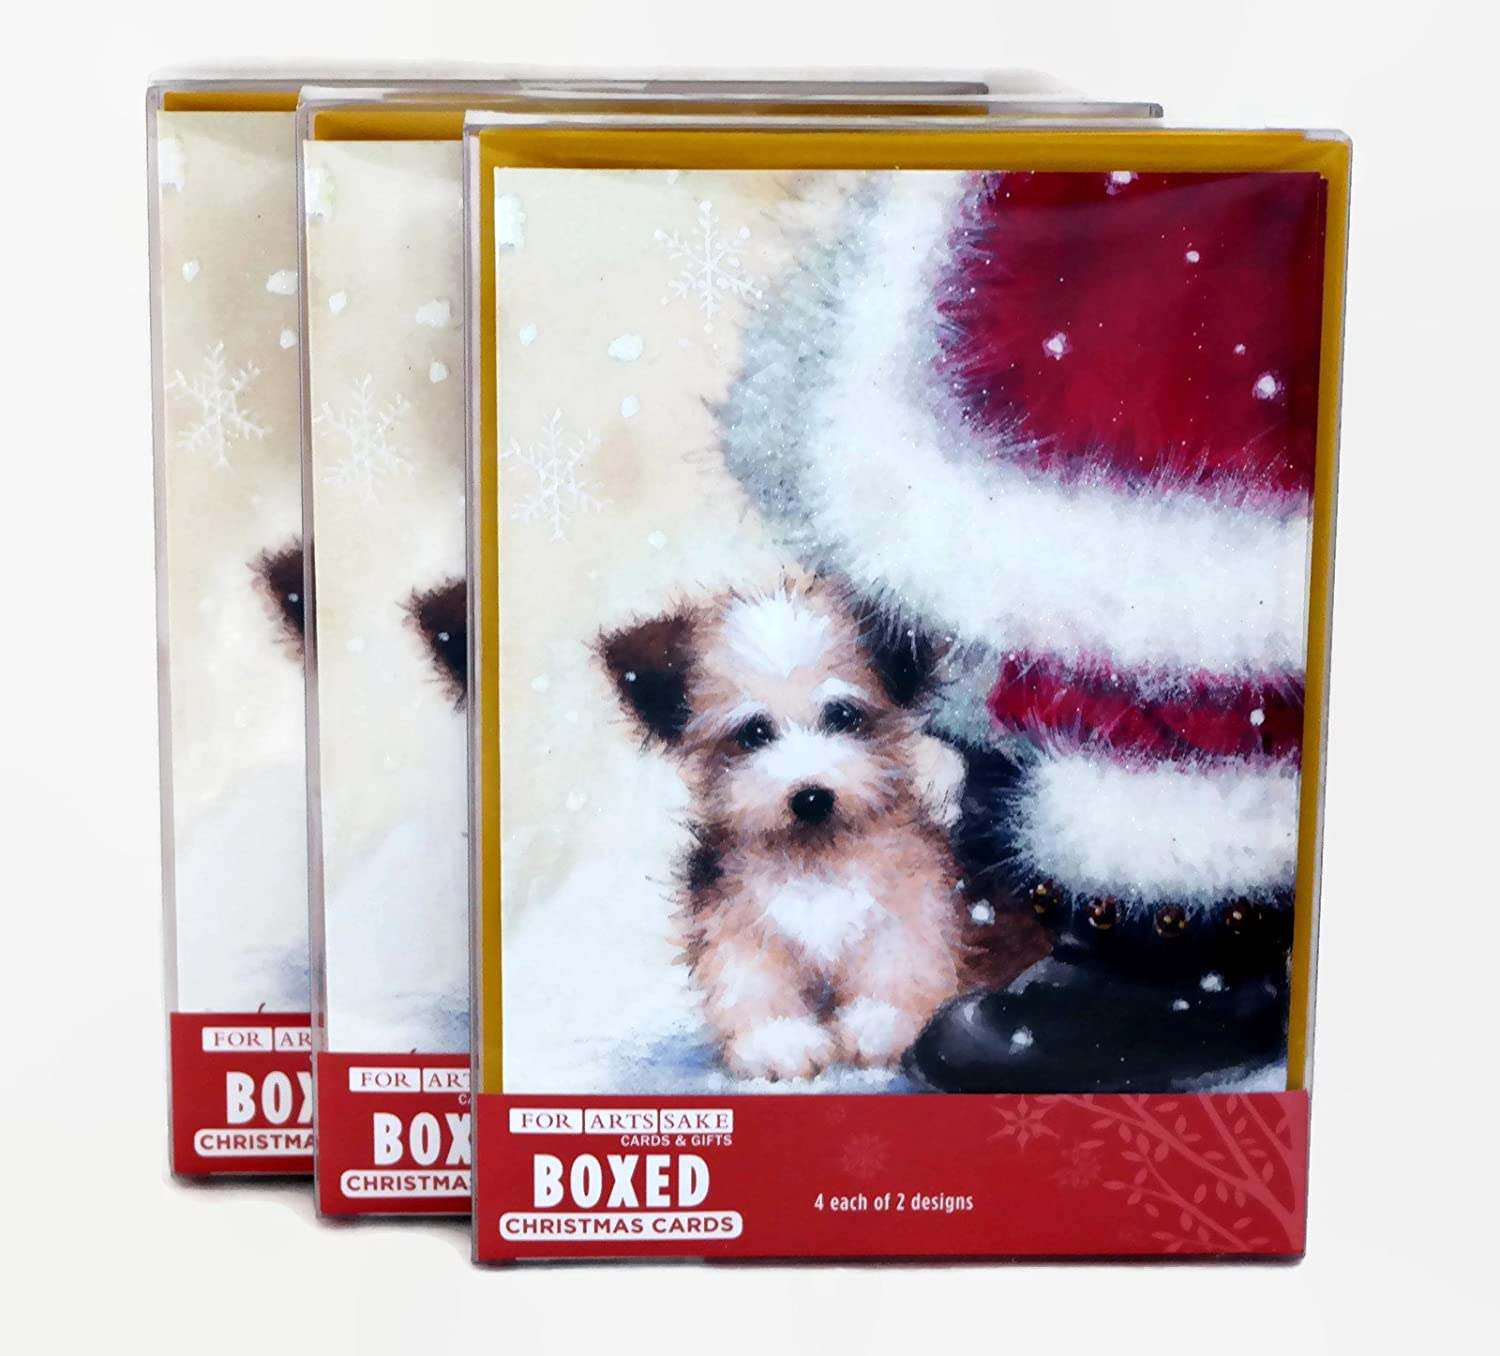 Amazon.com : Merry Christmas Holiday Greeting Cards, Adorable Puppy ...